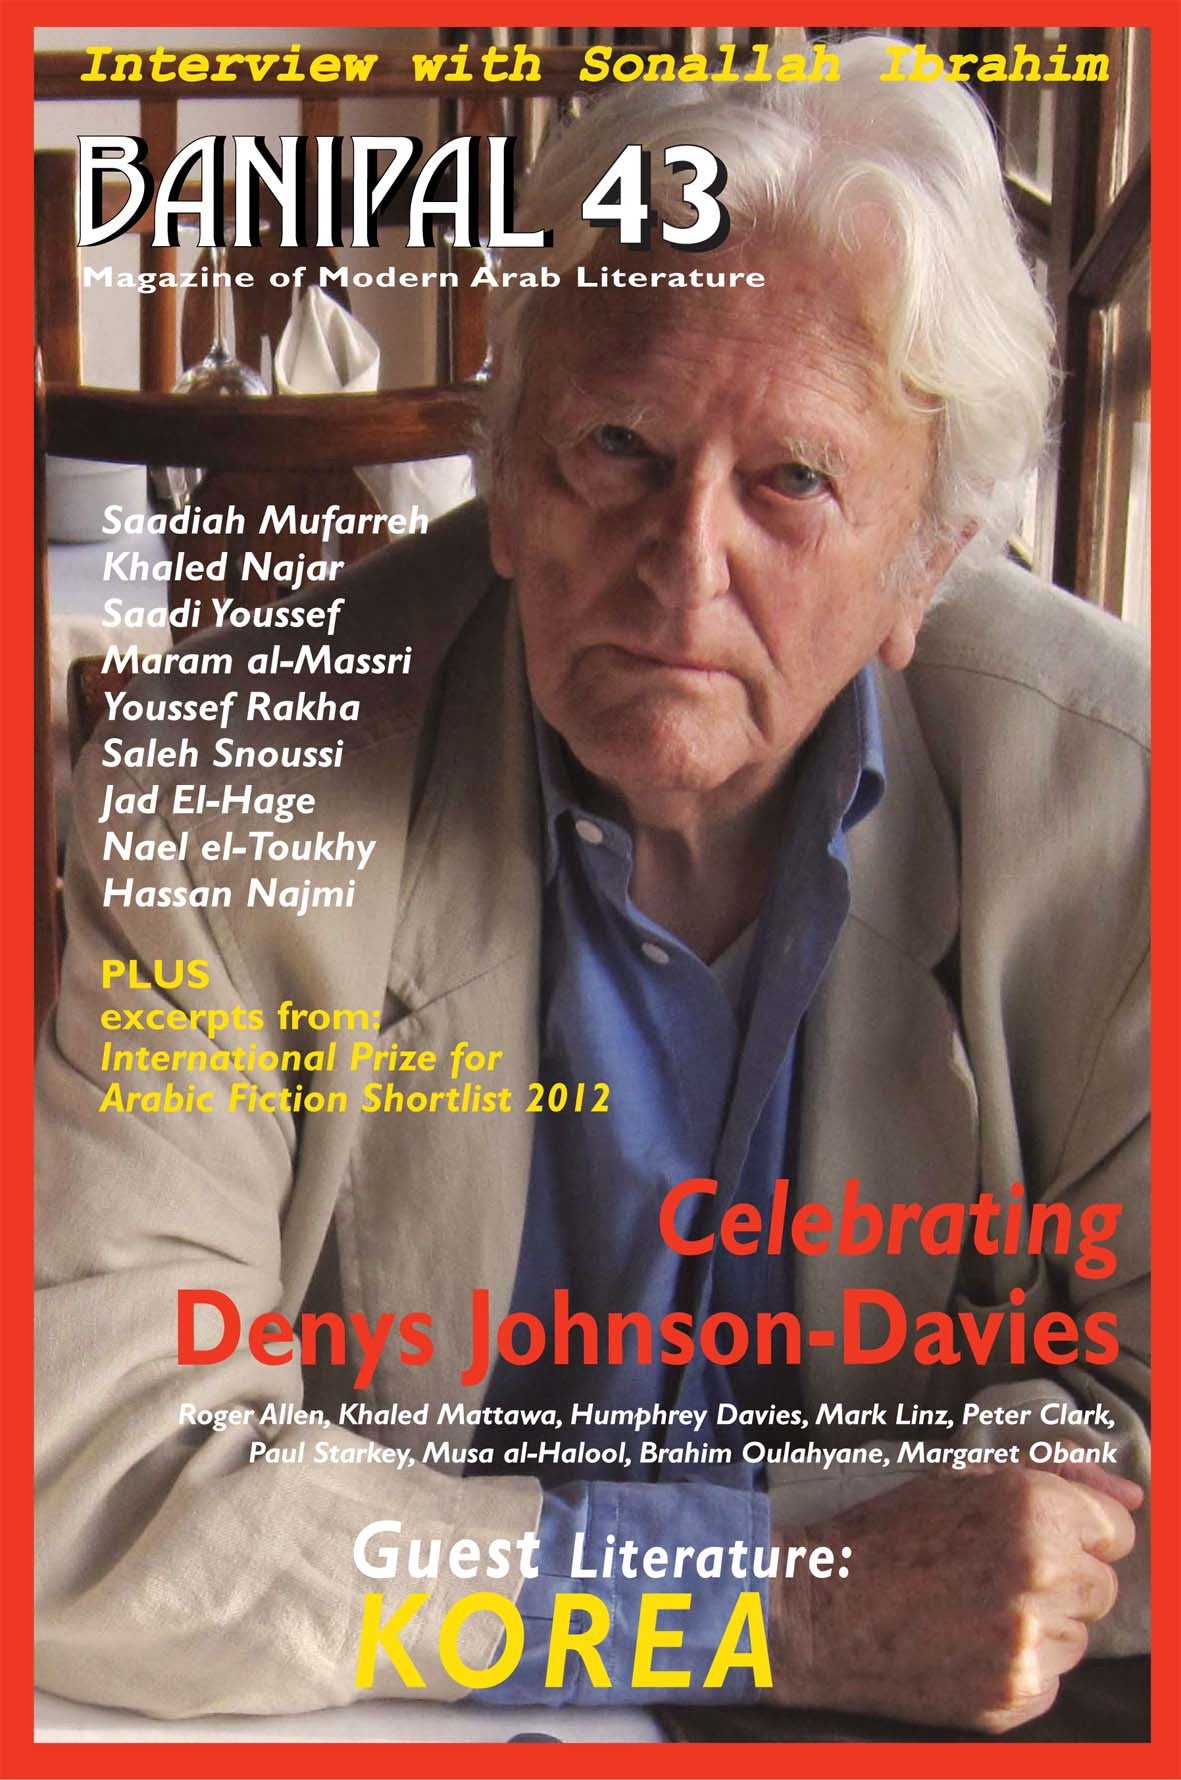 Banipal 43 - Celebrating Denys Johnson-Davies